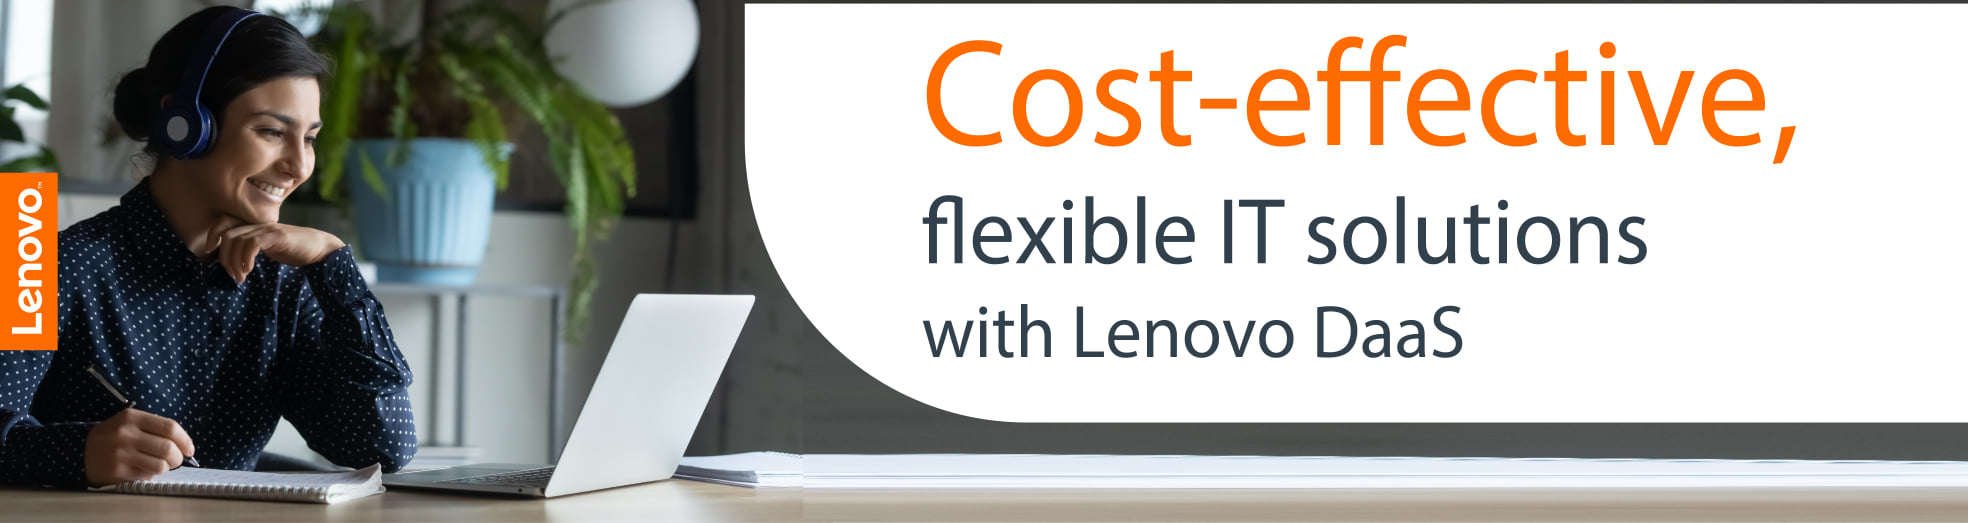 Cost-effective, flexible IT Solutions with Lenovo Daas